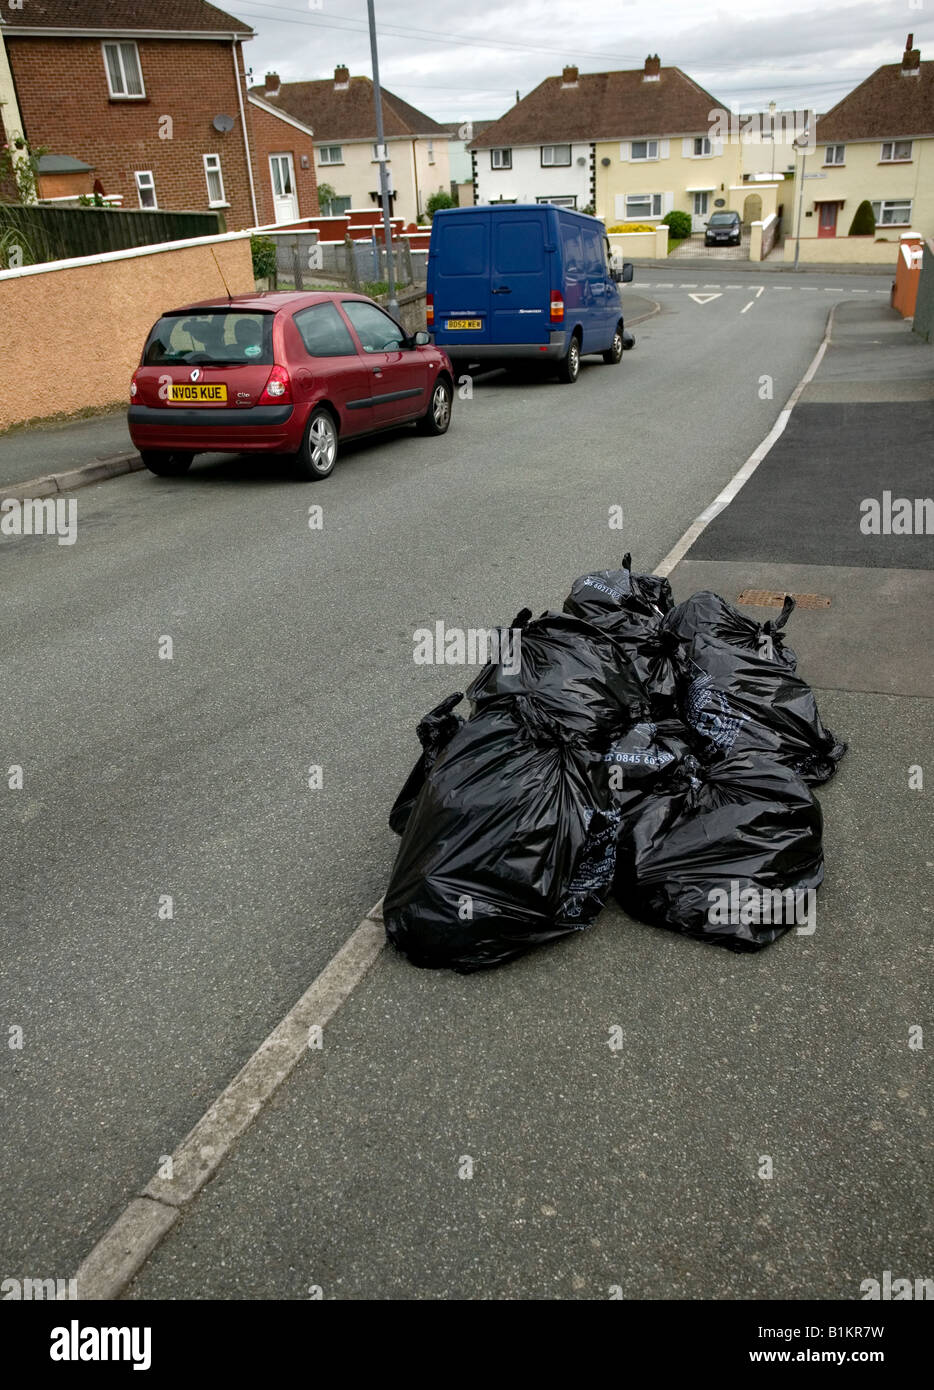 Plastic Rubbish bags waiting for collection on UK street - Stock Image